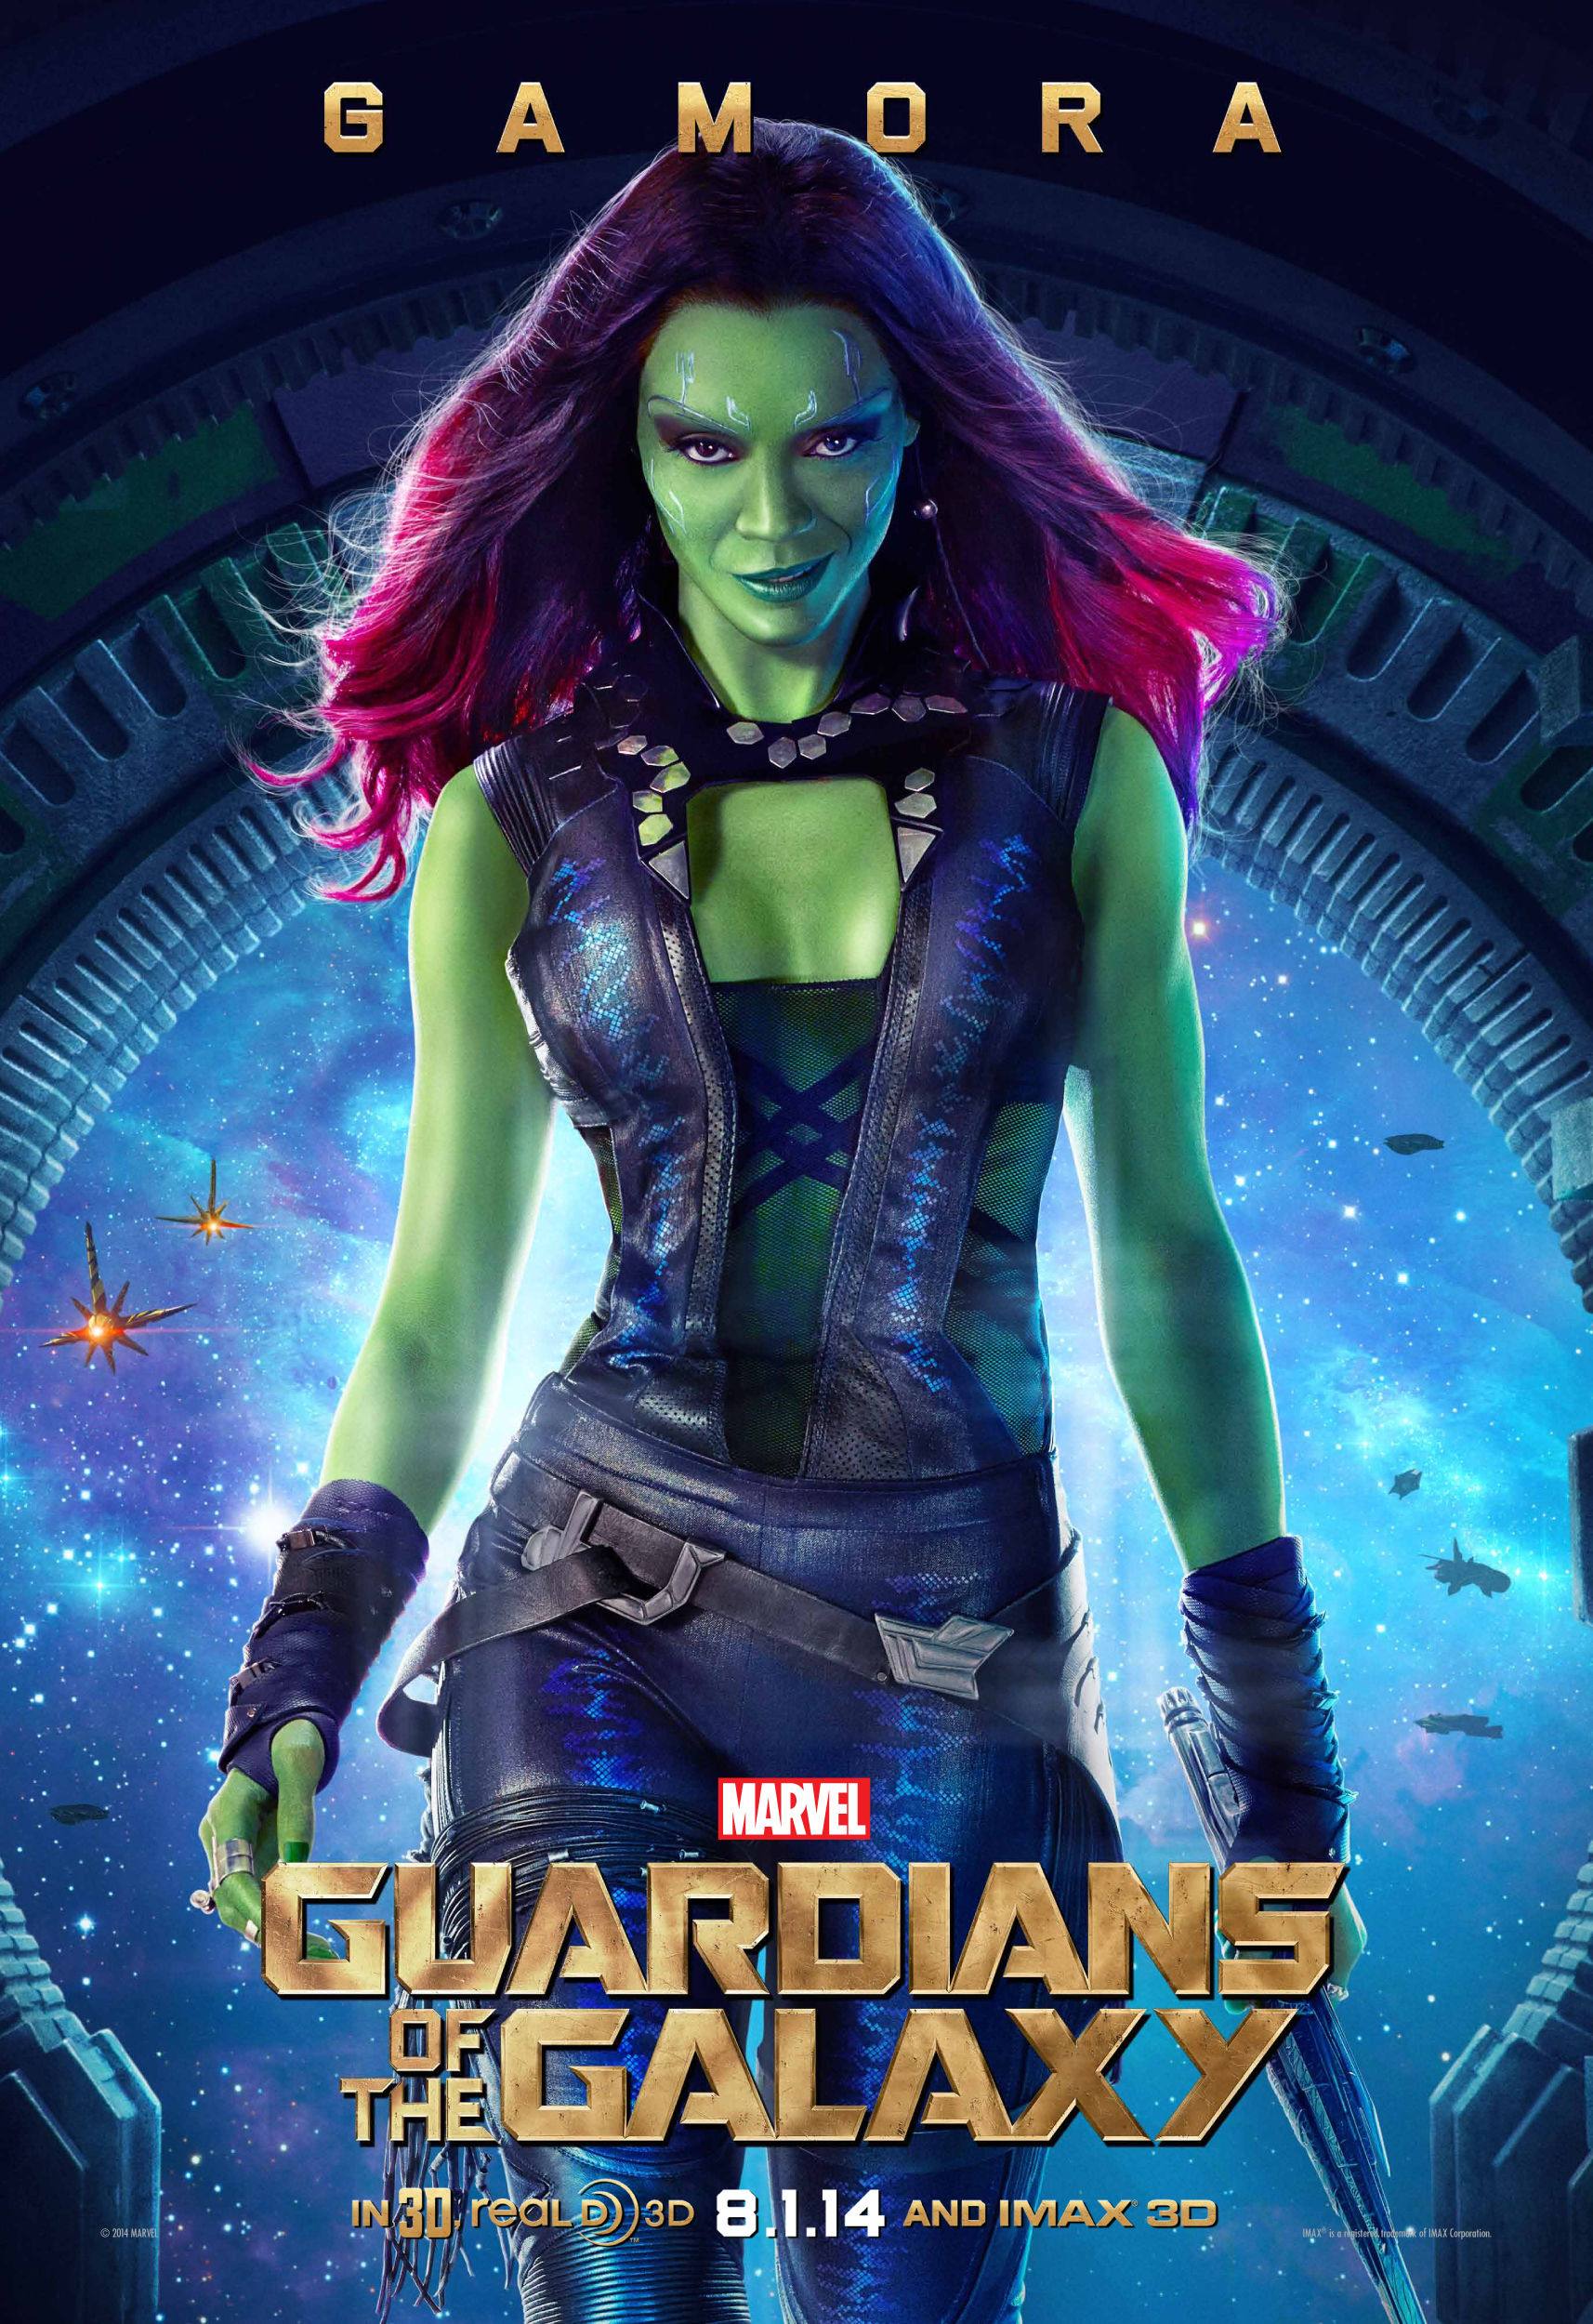 Get to Know Gamora In New Guardians of the Galaxy Featurette